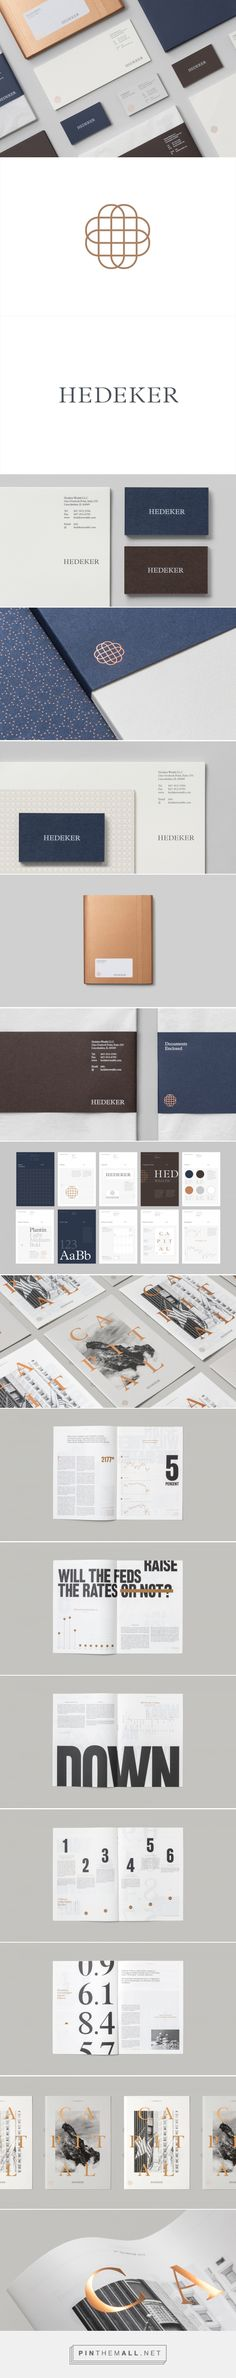 New Brand Identity for Hedeker by Socio Design — BP&O - created via https://pinthemall.net